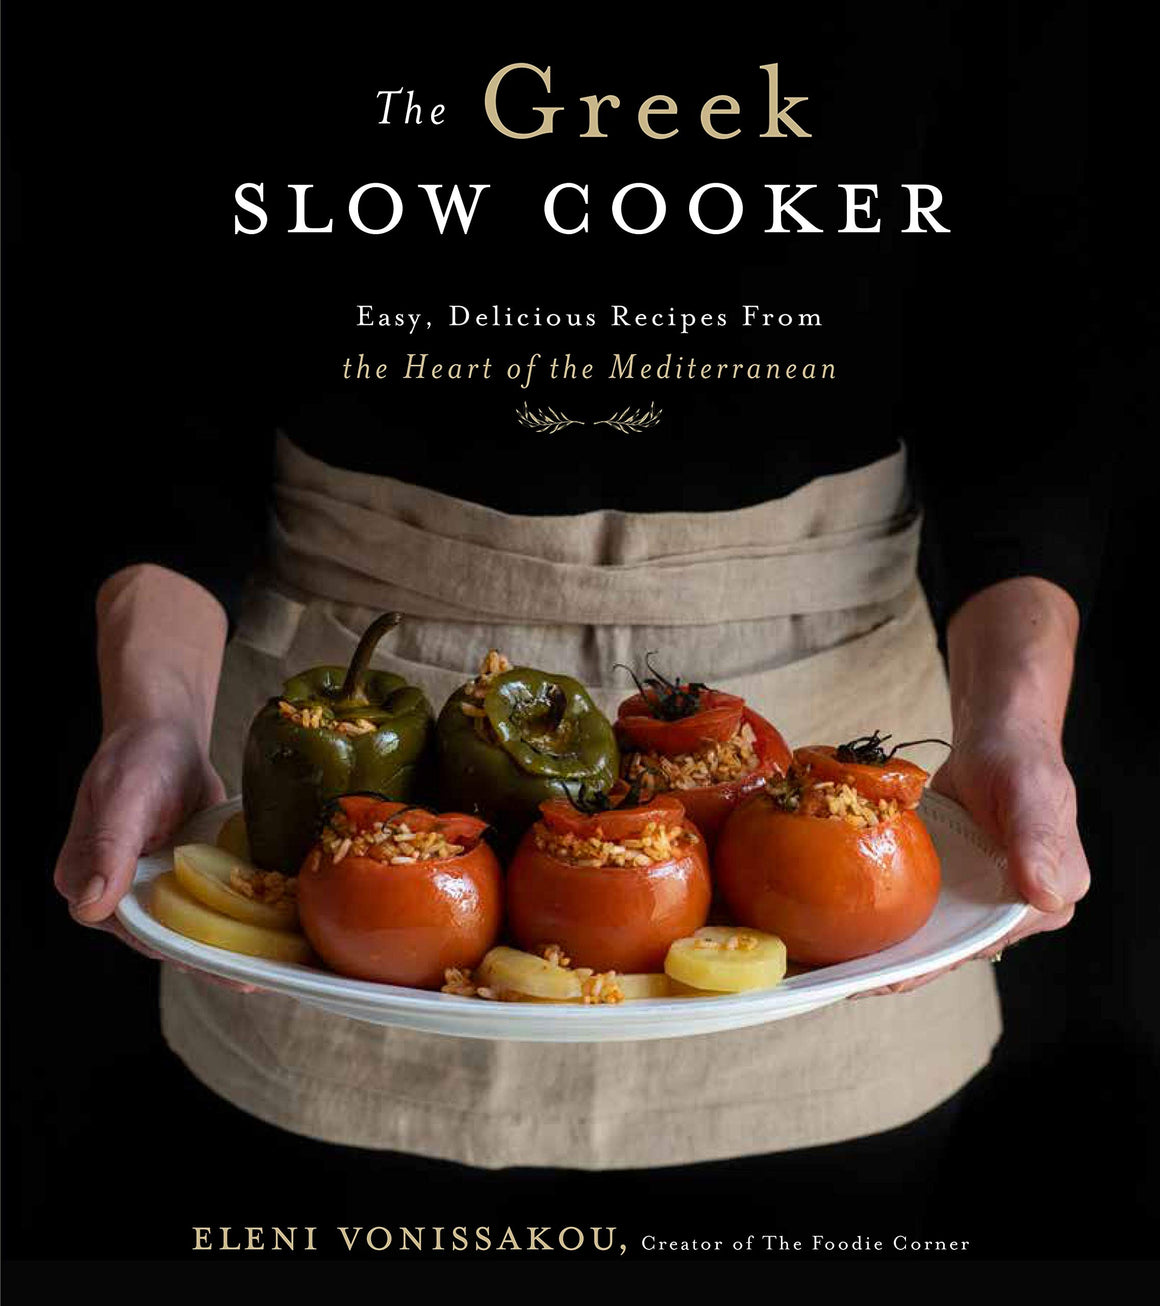 (Slow Cooker) Eleni Vonissakou. The Greek Slow Cooker: Easy, Delicious Recipes From the Heart of the Mediterranean.